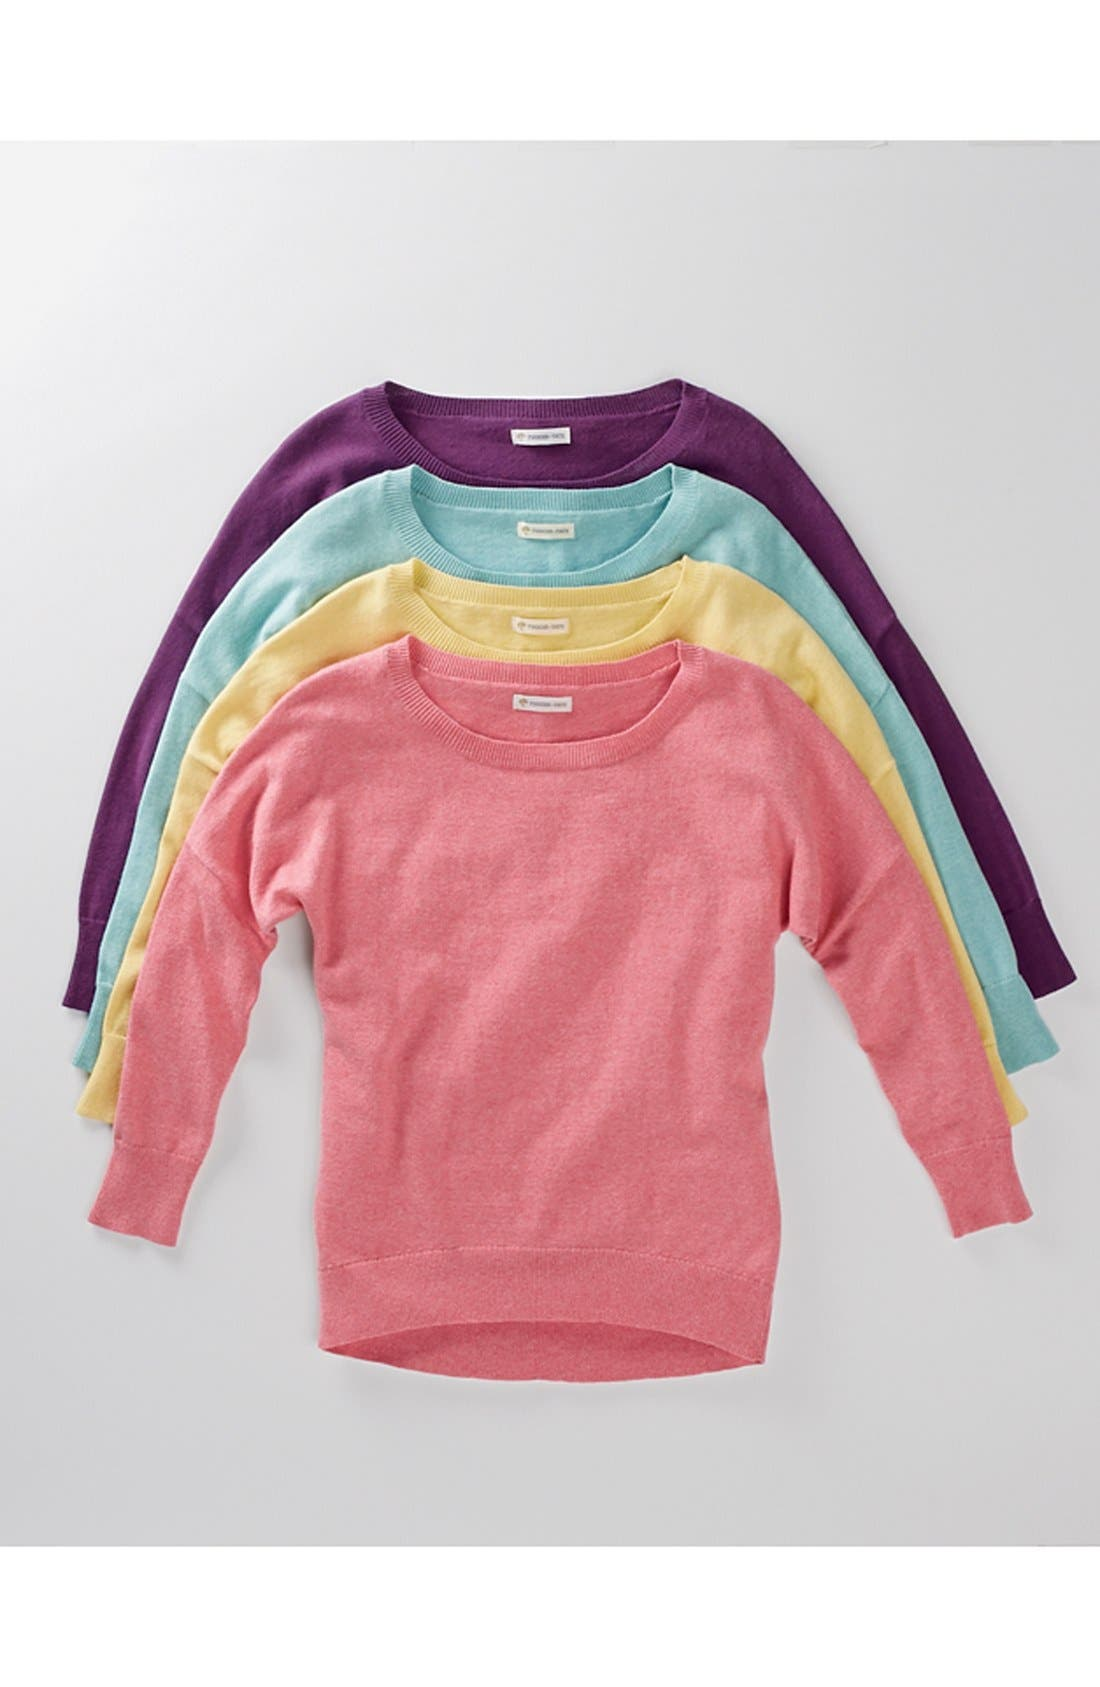 Alternate Image 2  - Tucker + Tate High Low Cotton & Cashmere Sweater (Little Girls & Big Girls)